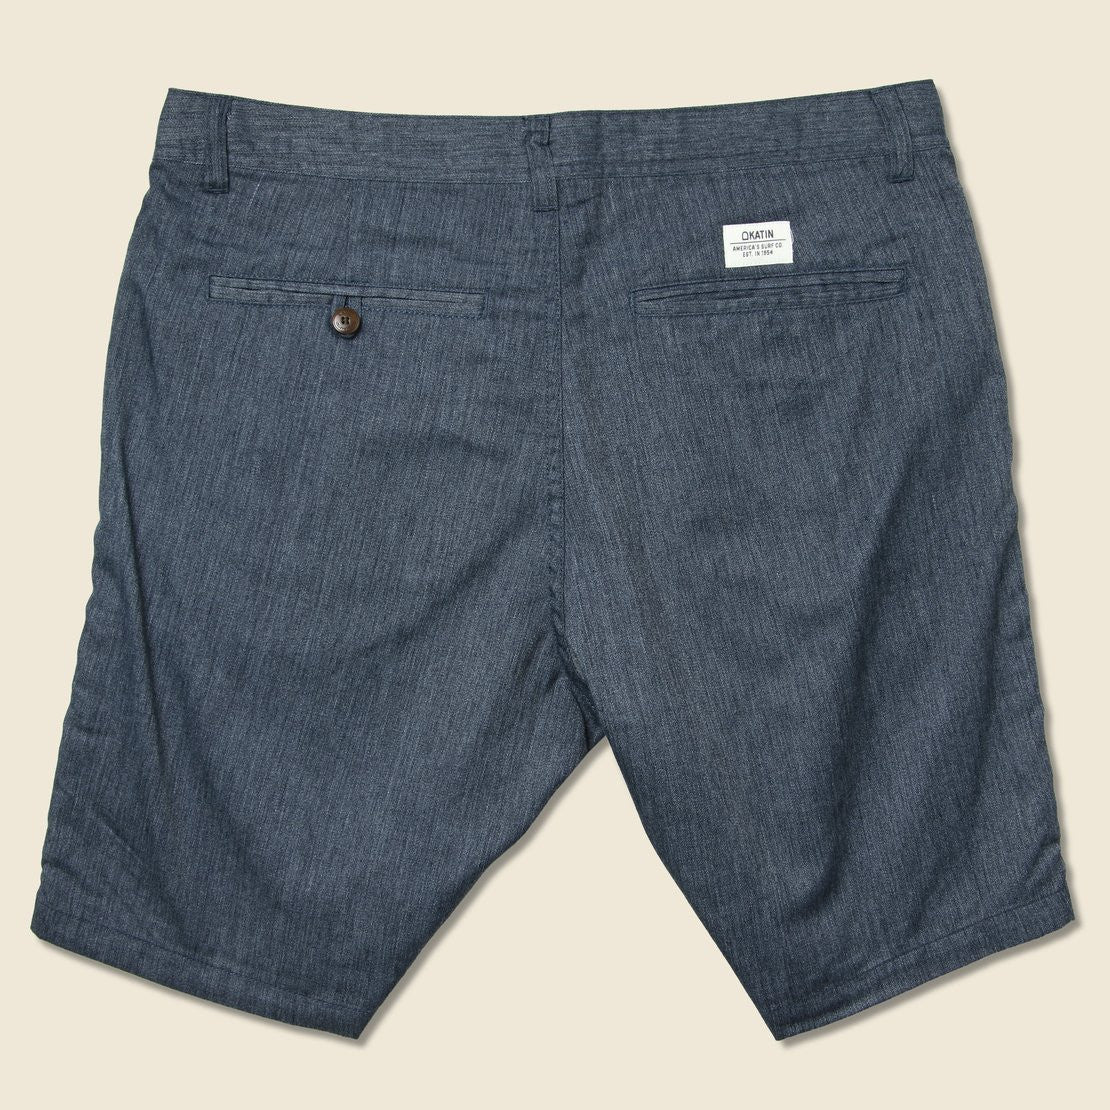 Court Short - Navy - Katin - STAG Provisions - Shorts - Solid